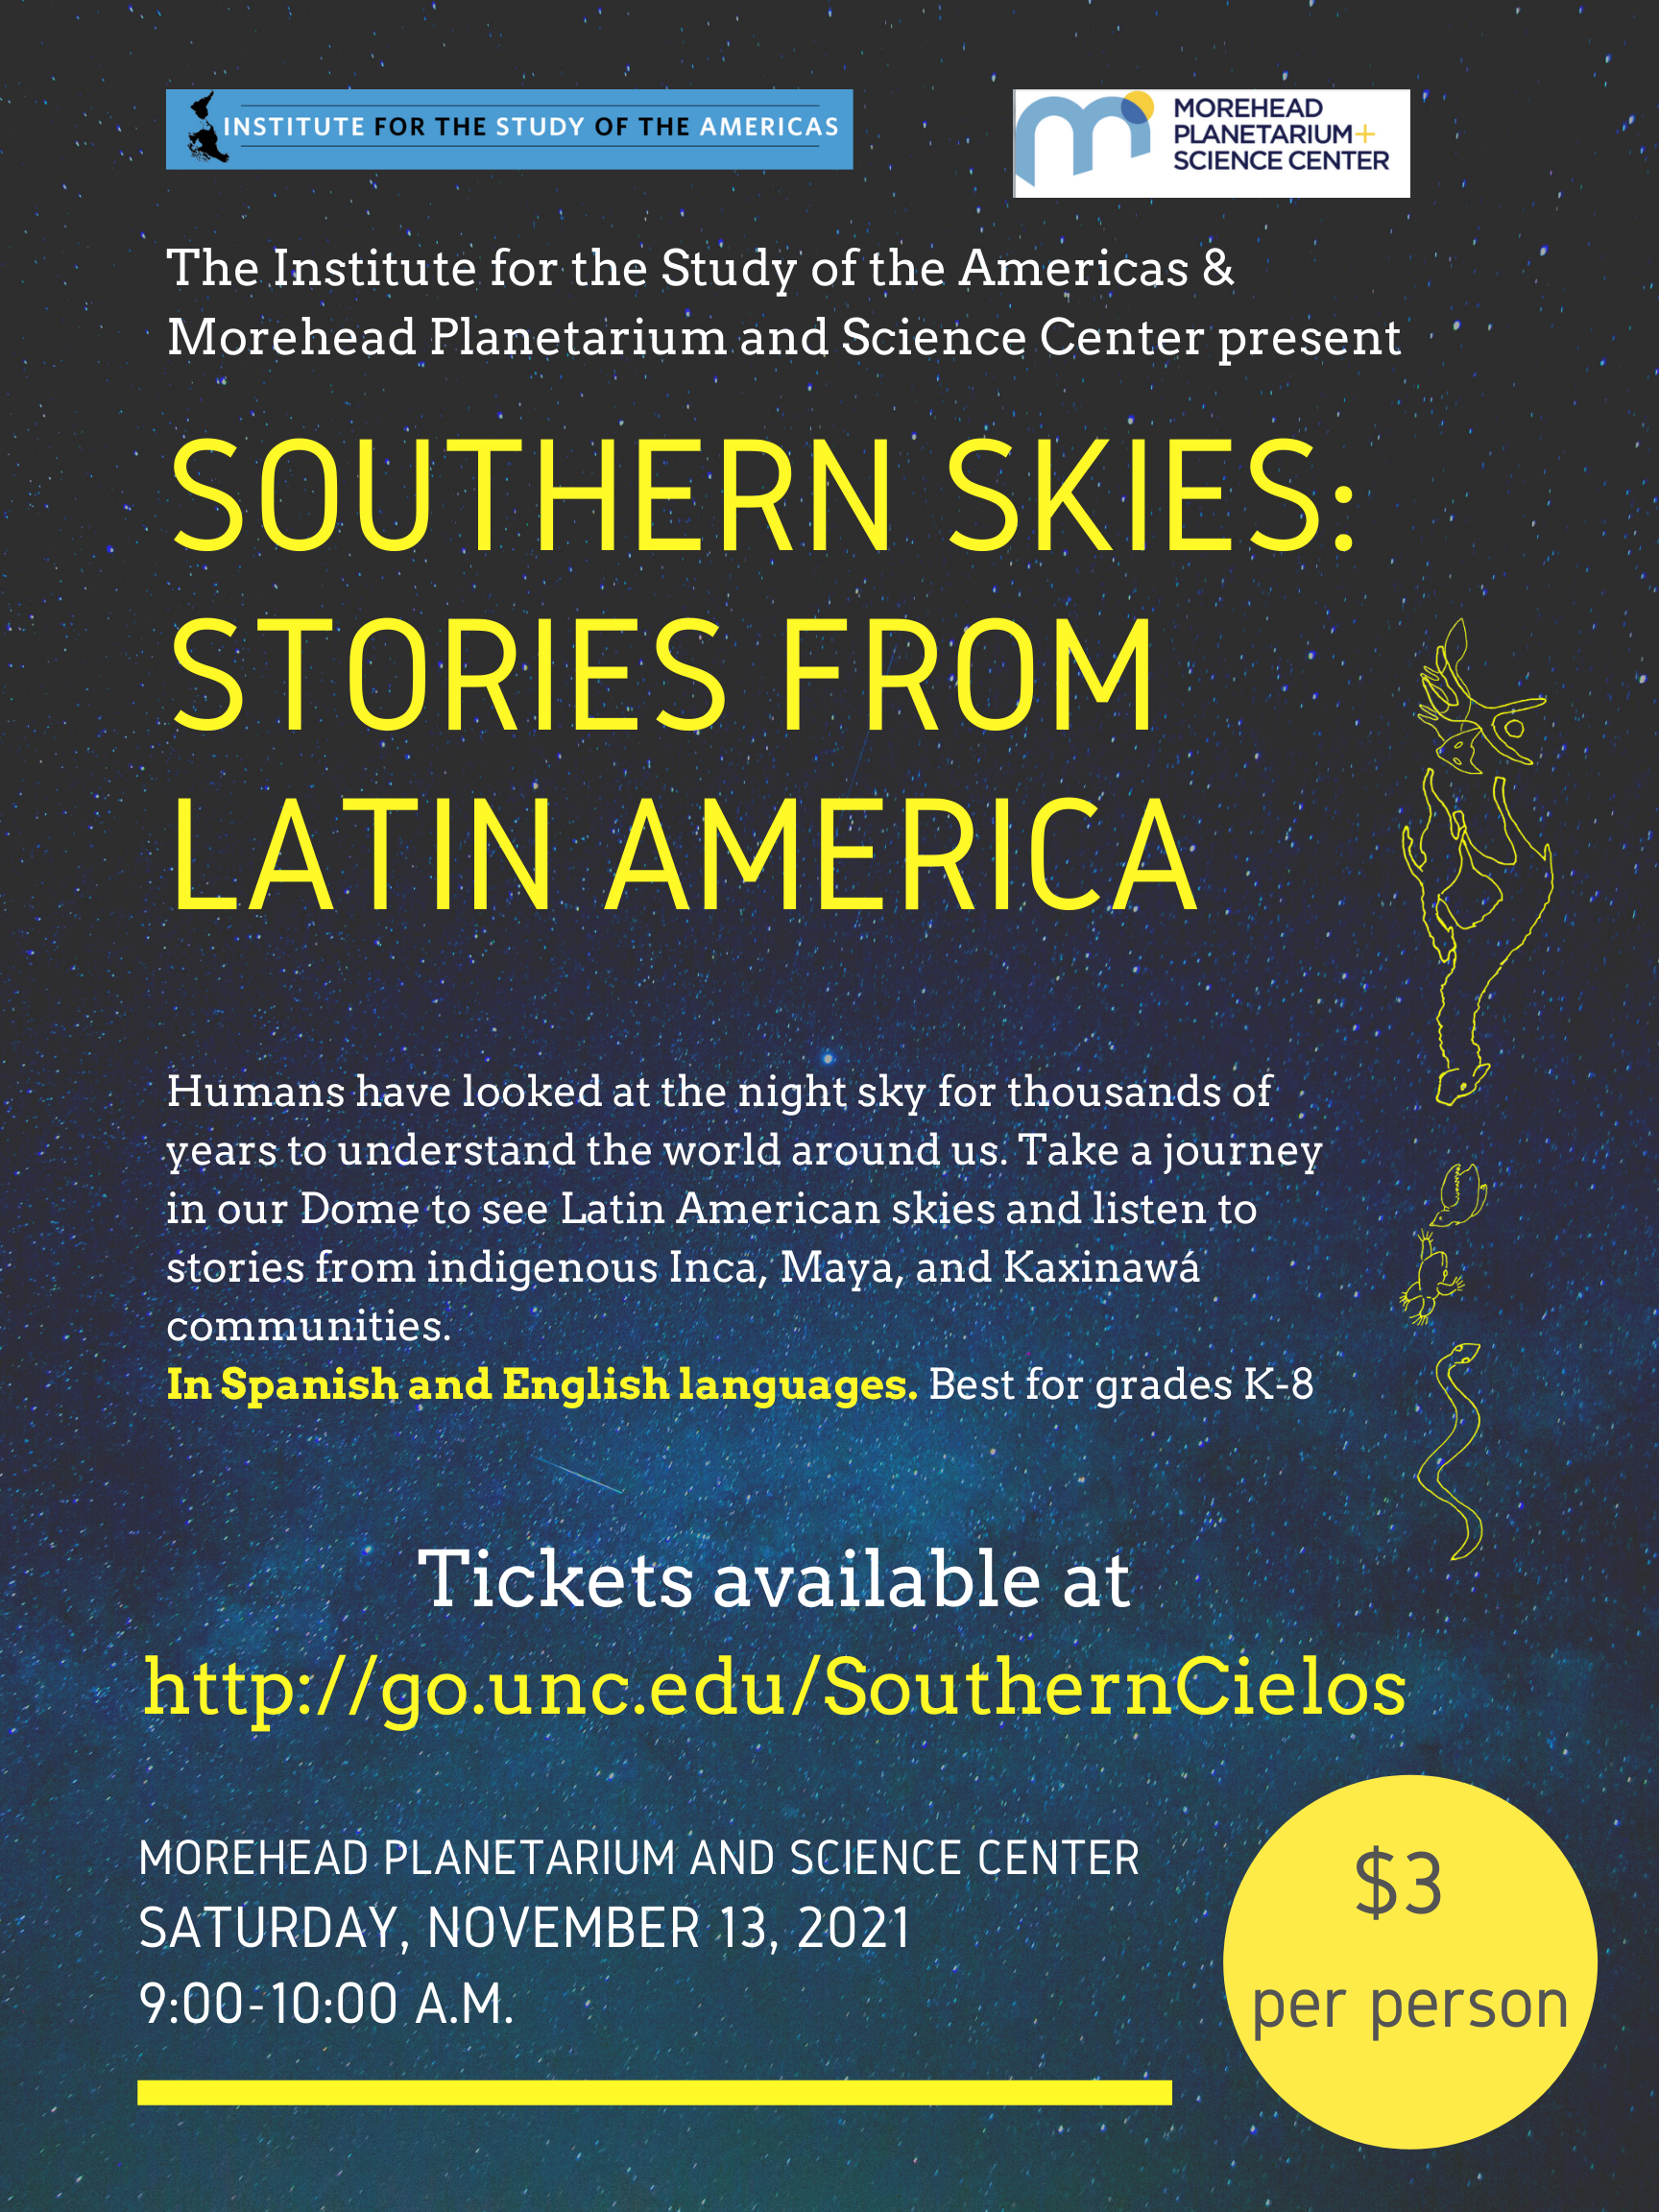 Southern Skies: Stories from Latin America